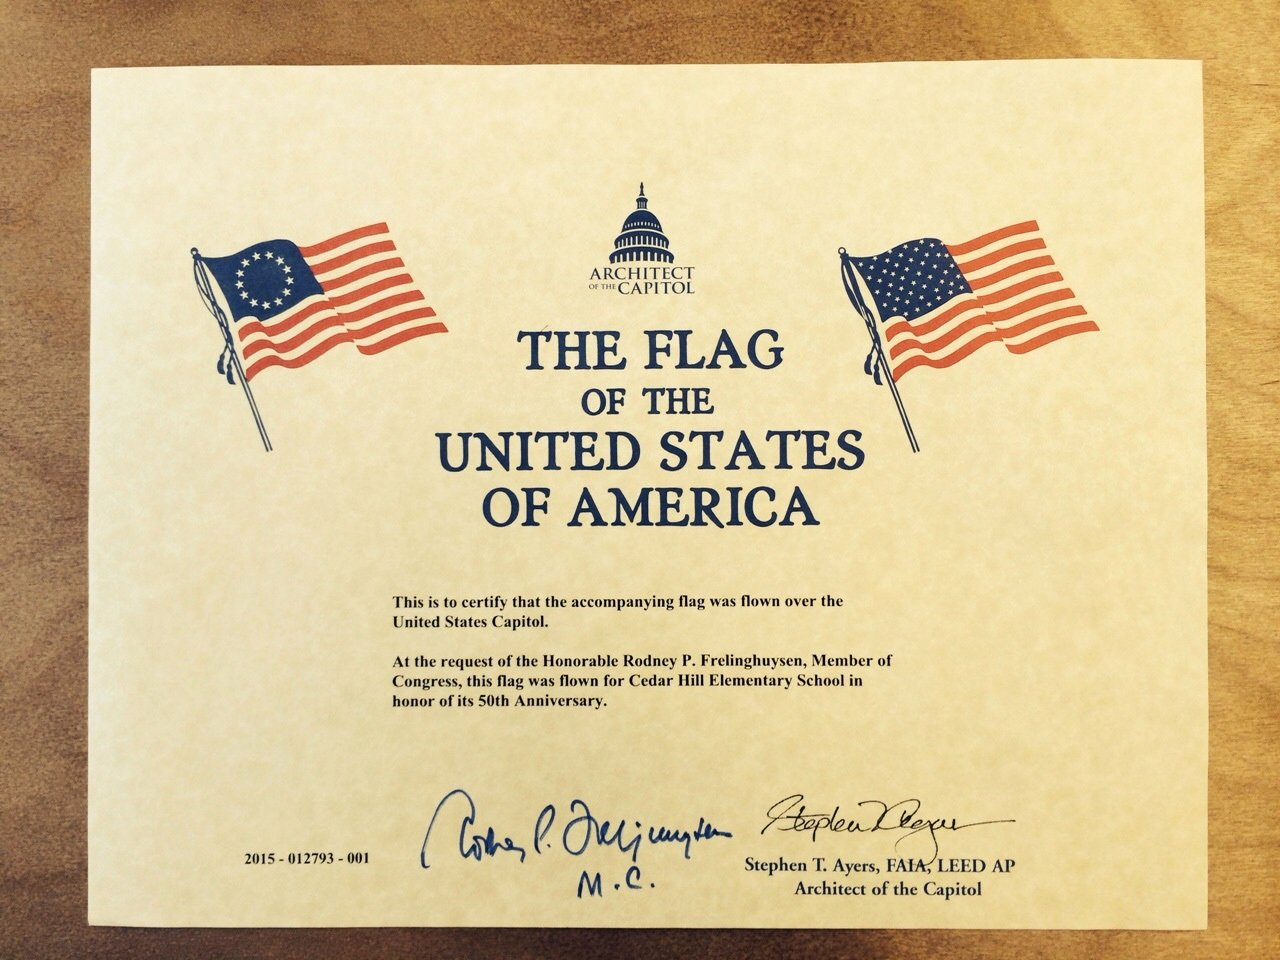 Flag Flown Certificate Template New Flag Flown Over Us Capitol In Honor Of Cedar Hill S 50th